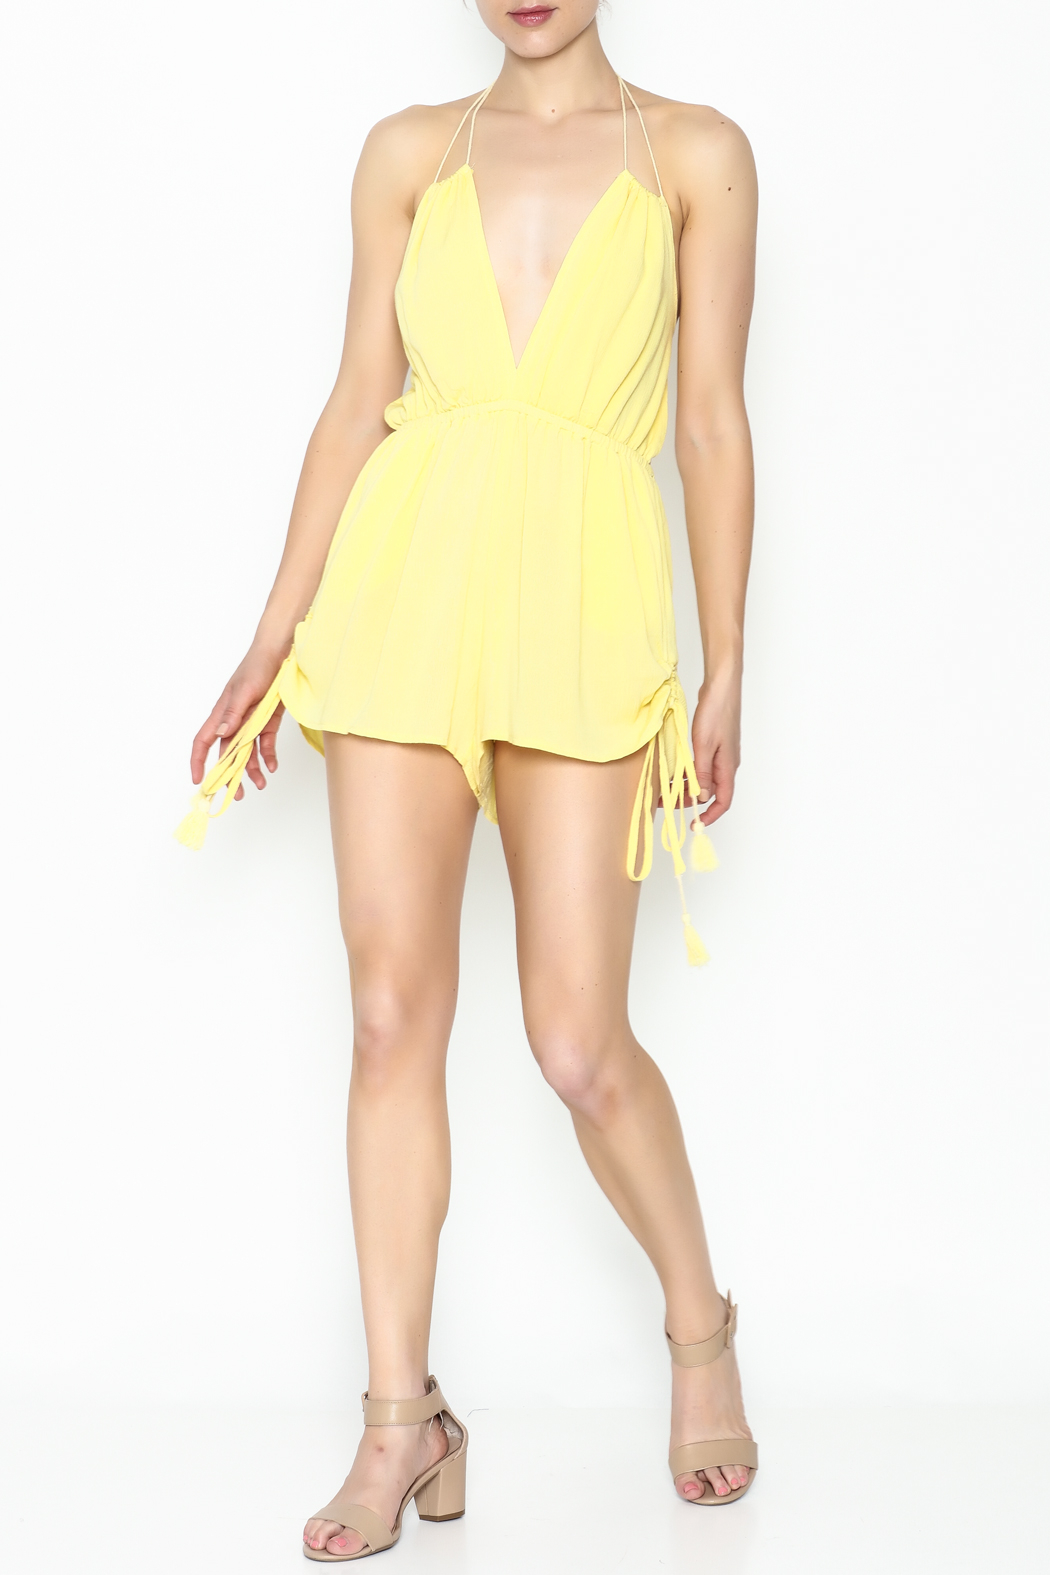 luxxel Yellow Strappy Romper - Side Cropped Image